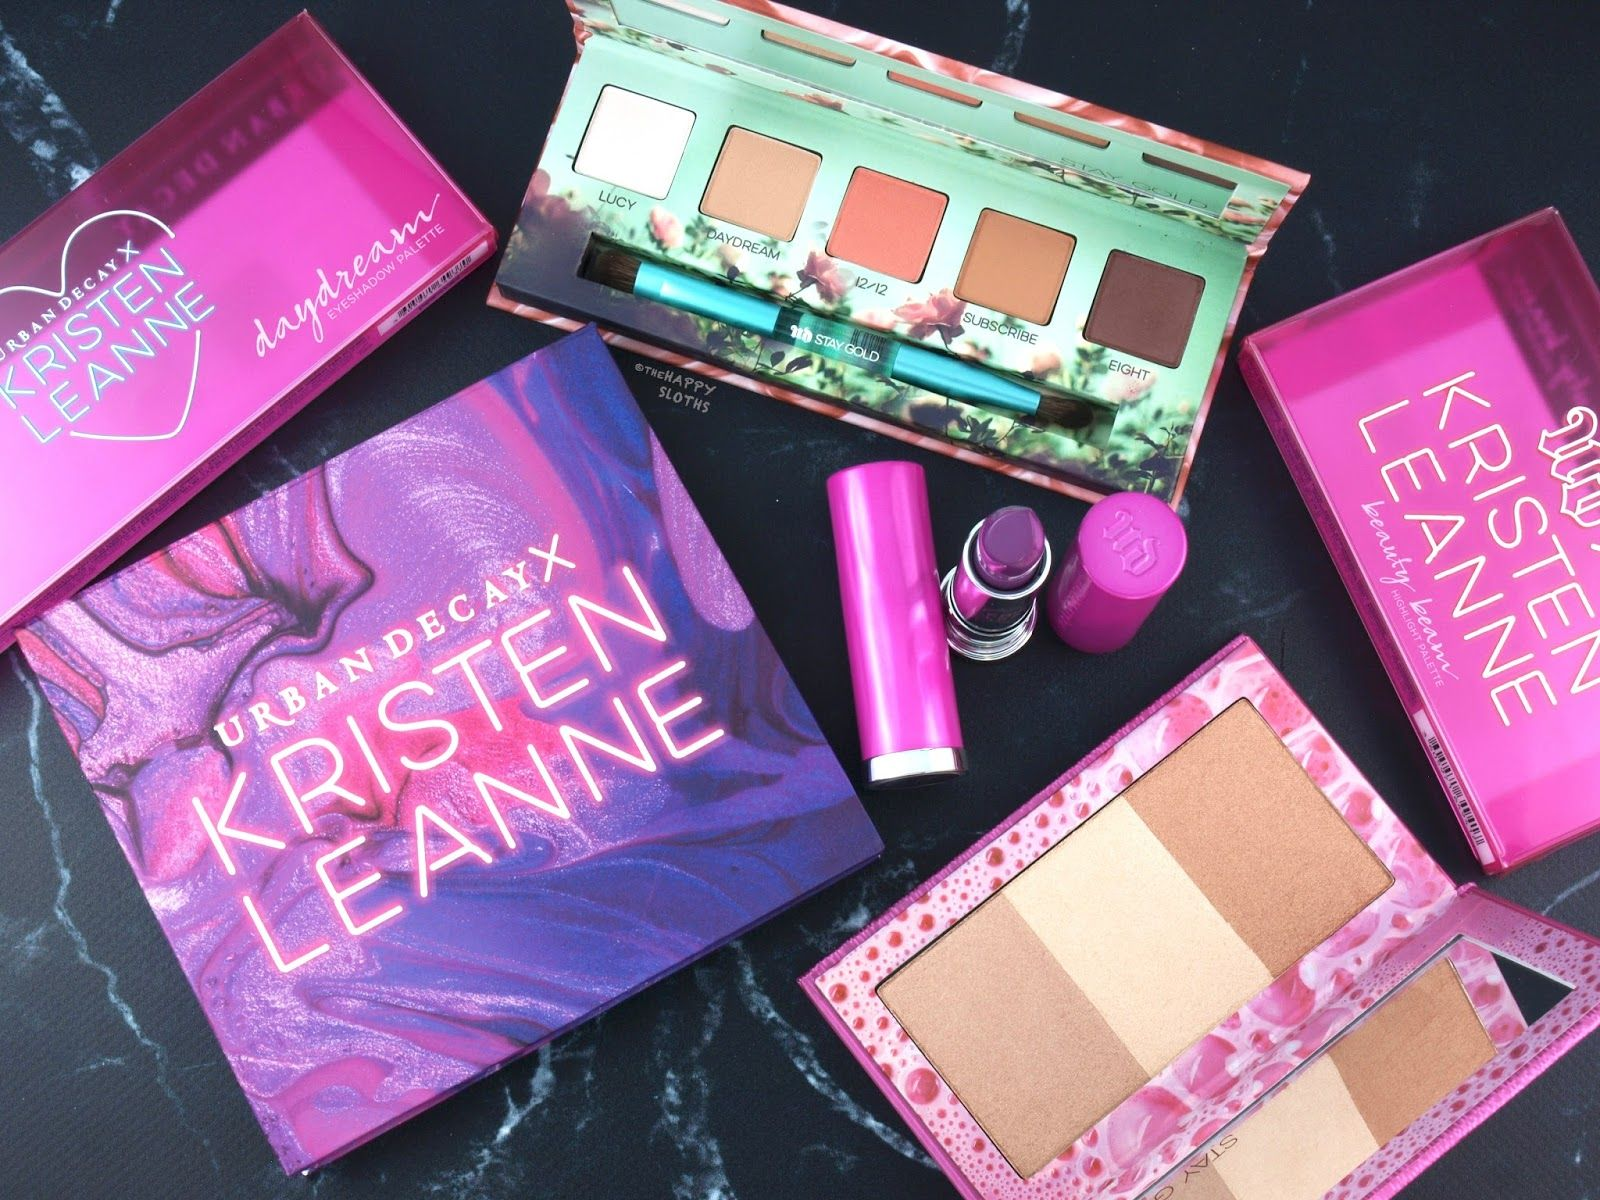 Urban Decay x Kristen Leanne Collection Review and